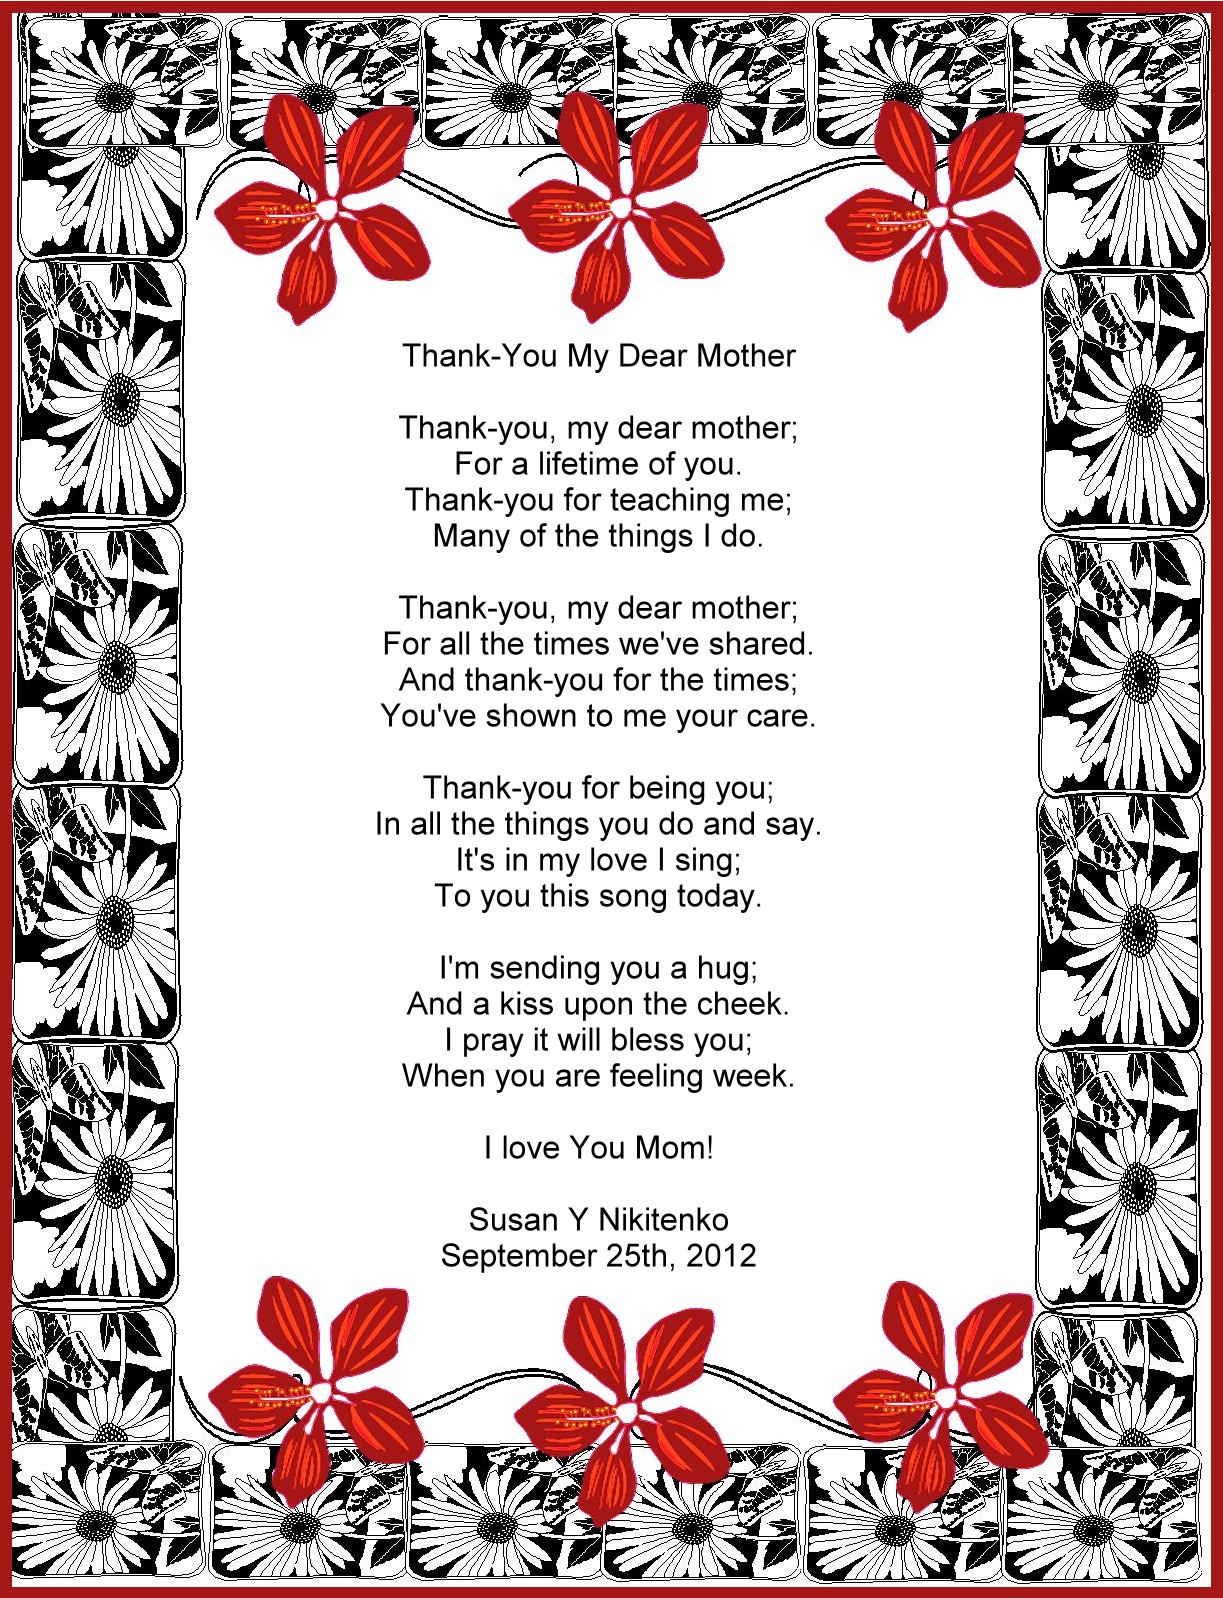 Dear Mom Poem Thank-you my dear mother